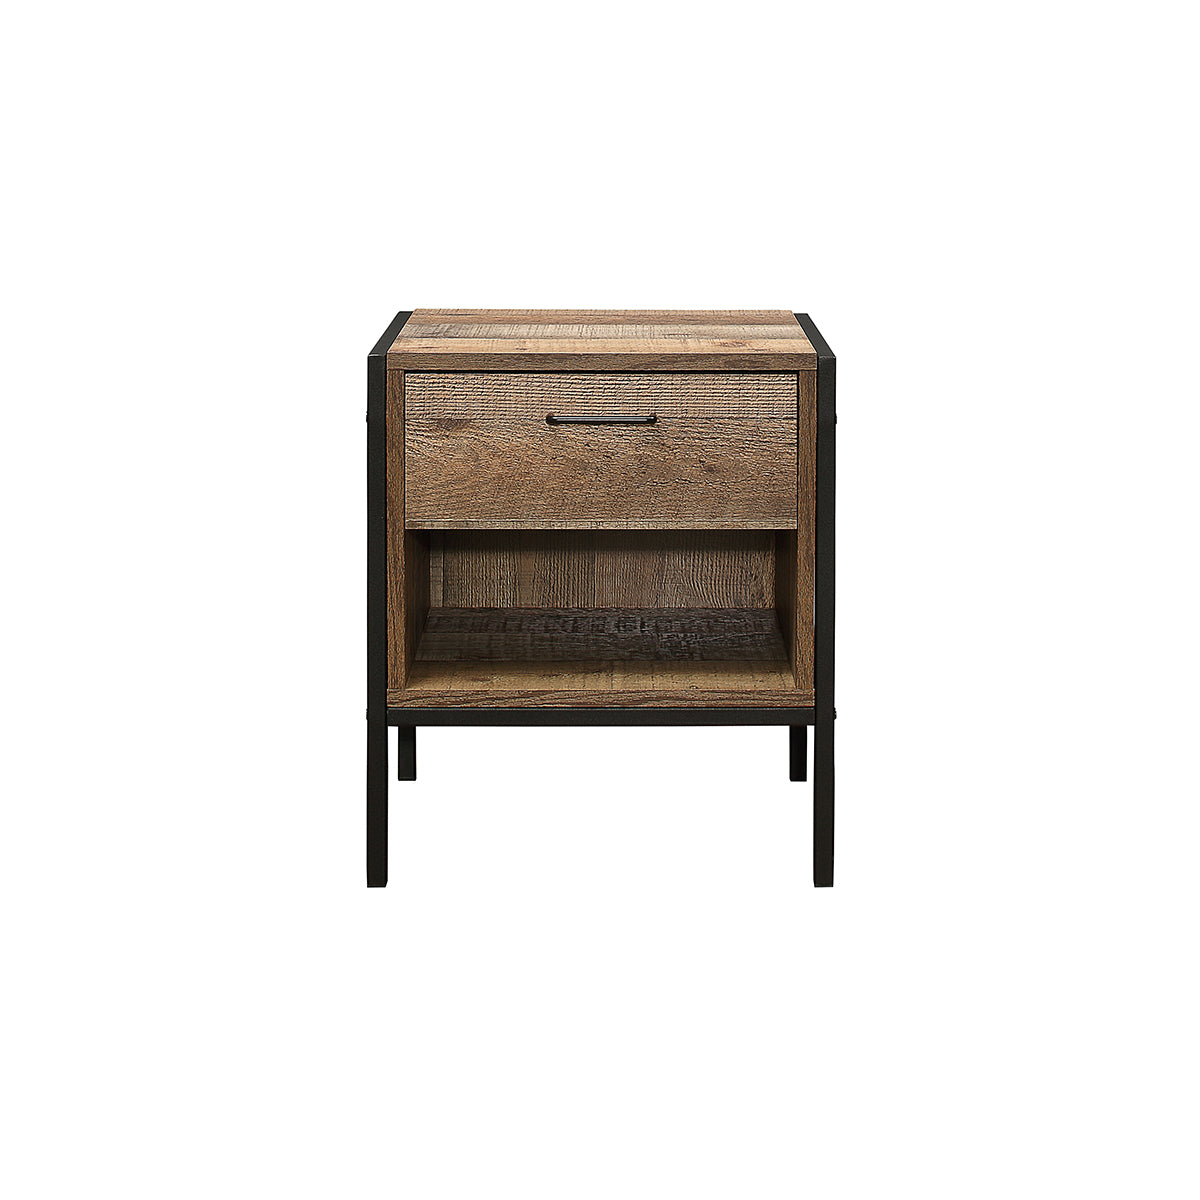 Metro 1 Drawer Bedside Table - Ezzo